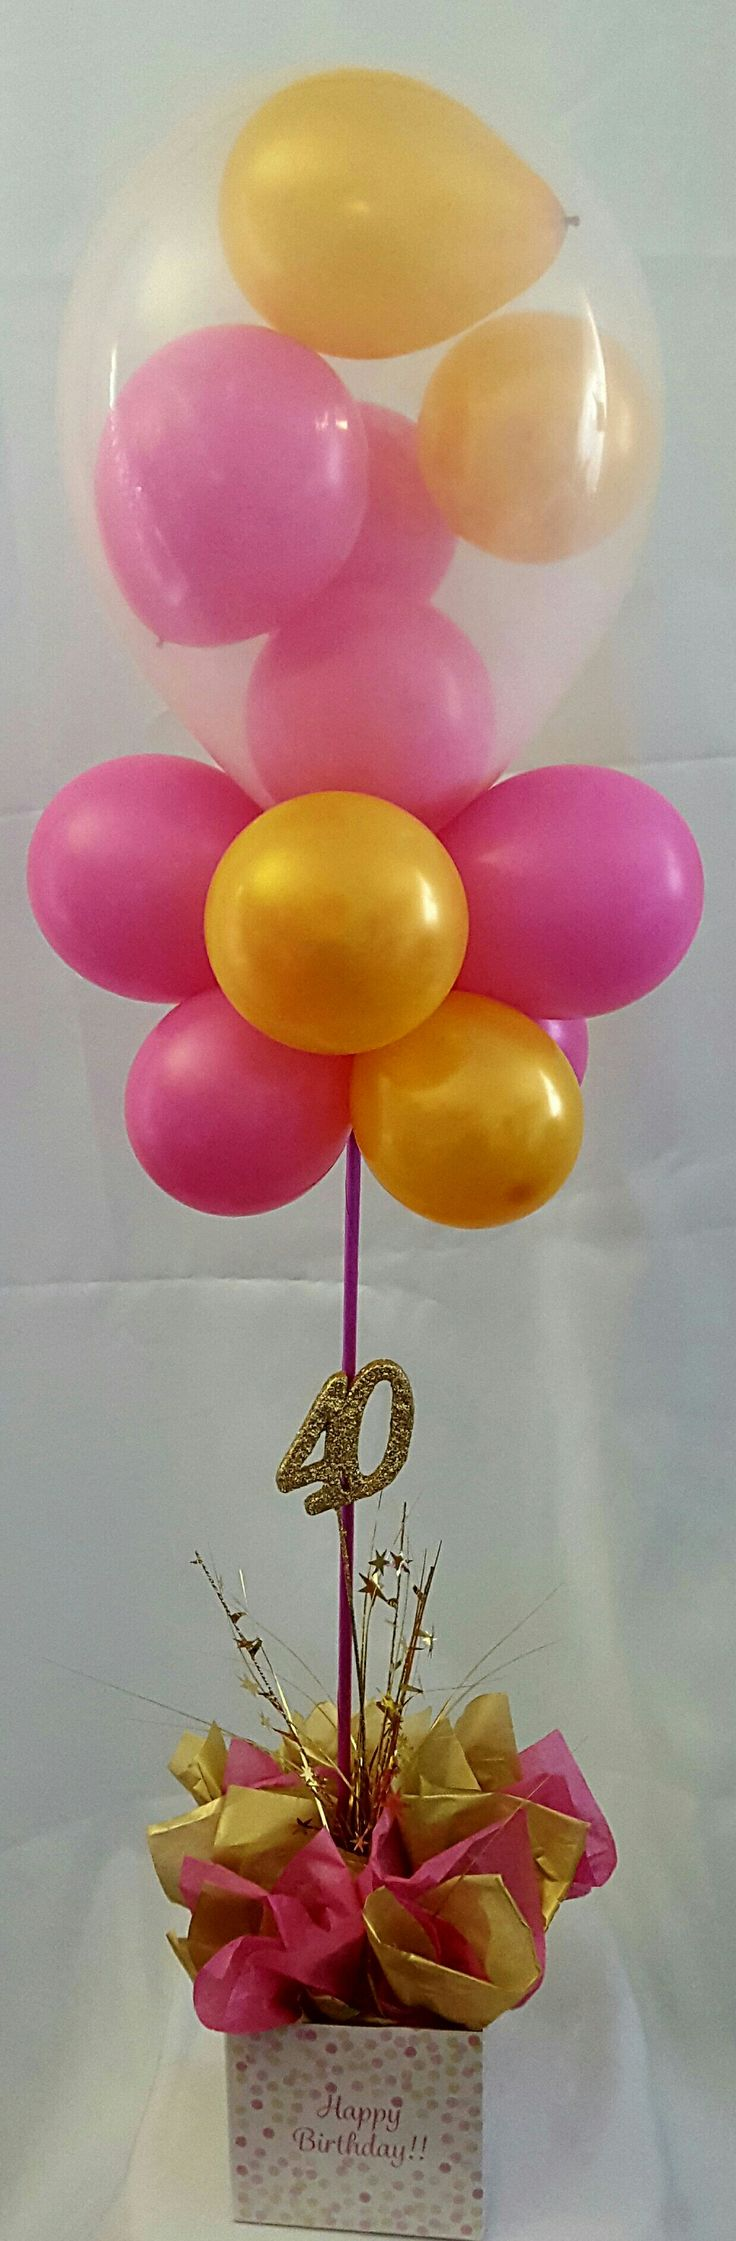 40th balloon topiary in a box with mini balloons inside of a clear balloon #partysolutions #40thbirthday #huntervalley